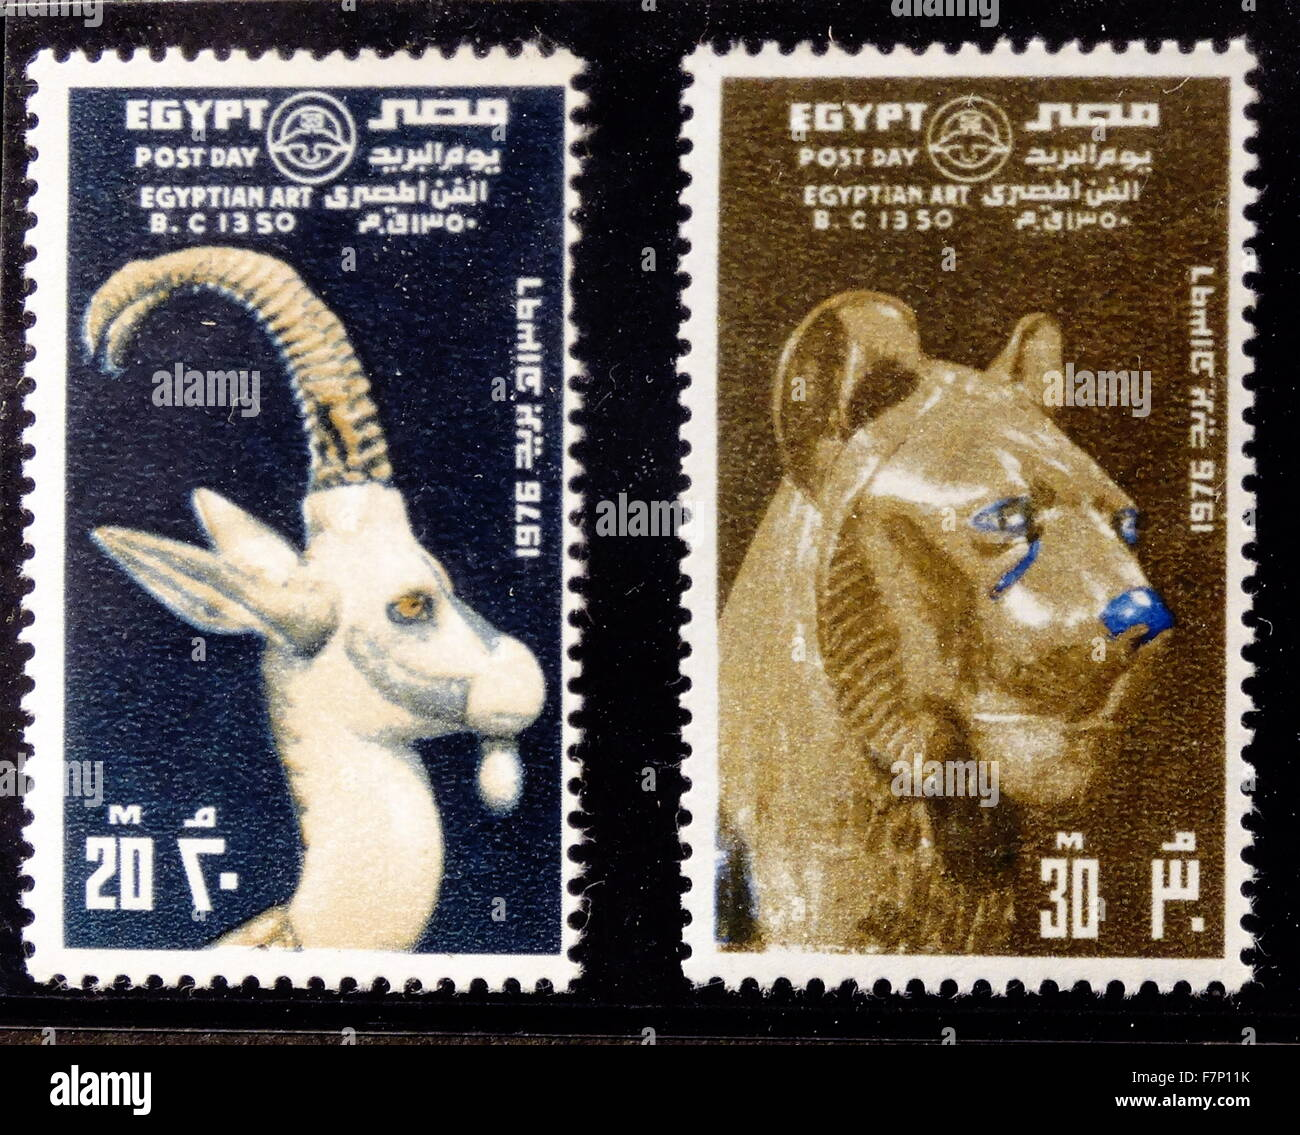 1967 Egyptian postage stamps with artefacts from ancient Egyptian tombs - Stock Image